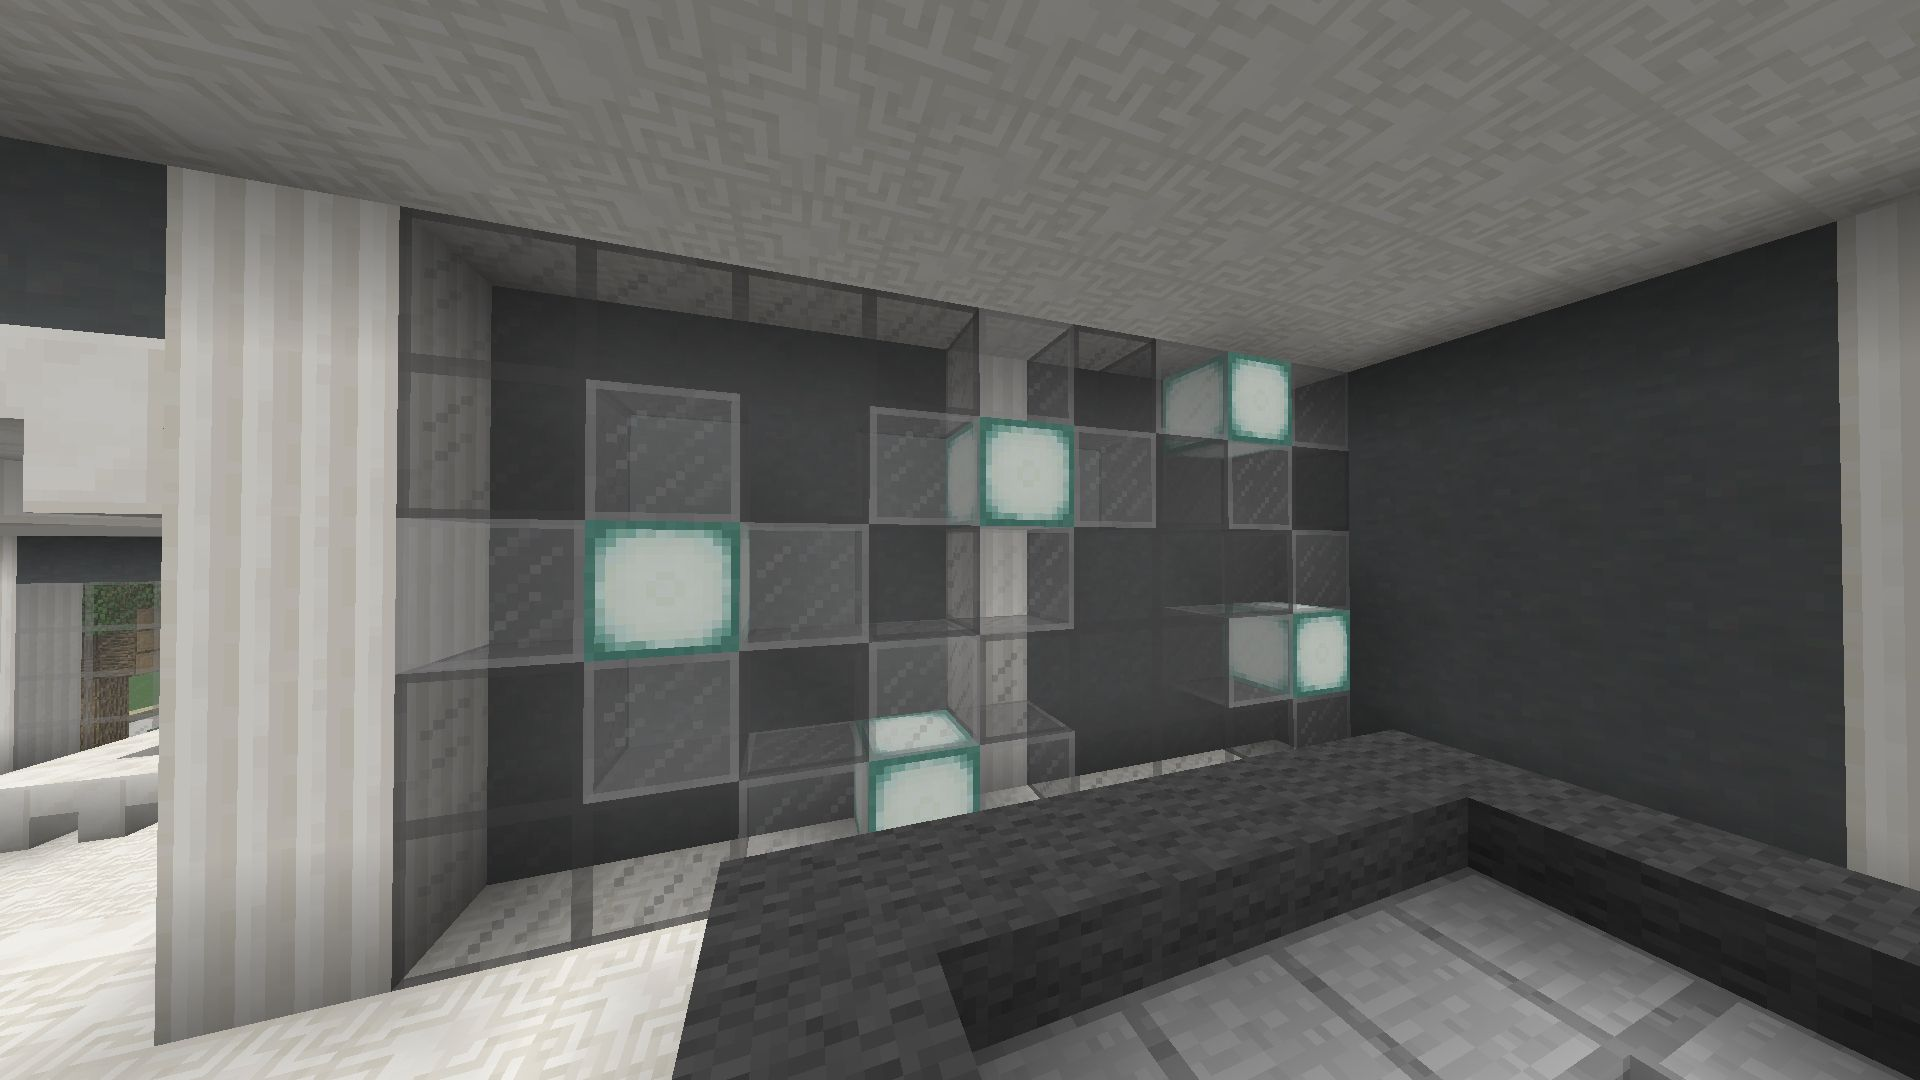 minecraft lighting idea no 2 made from light grey stained glass